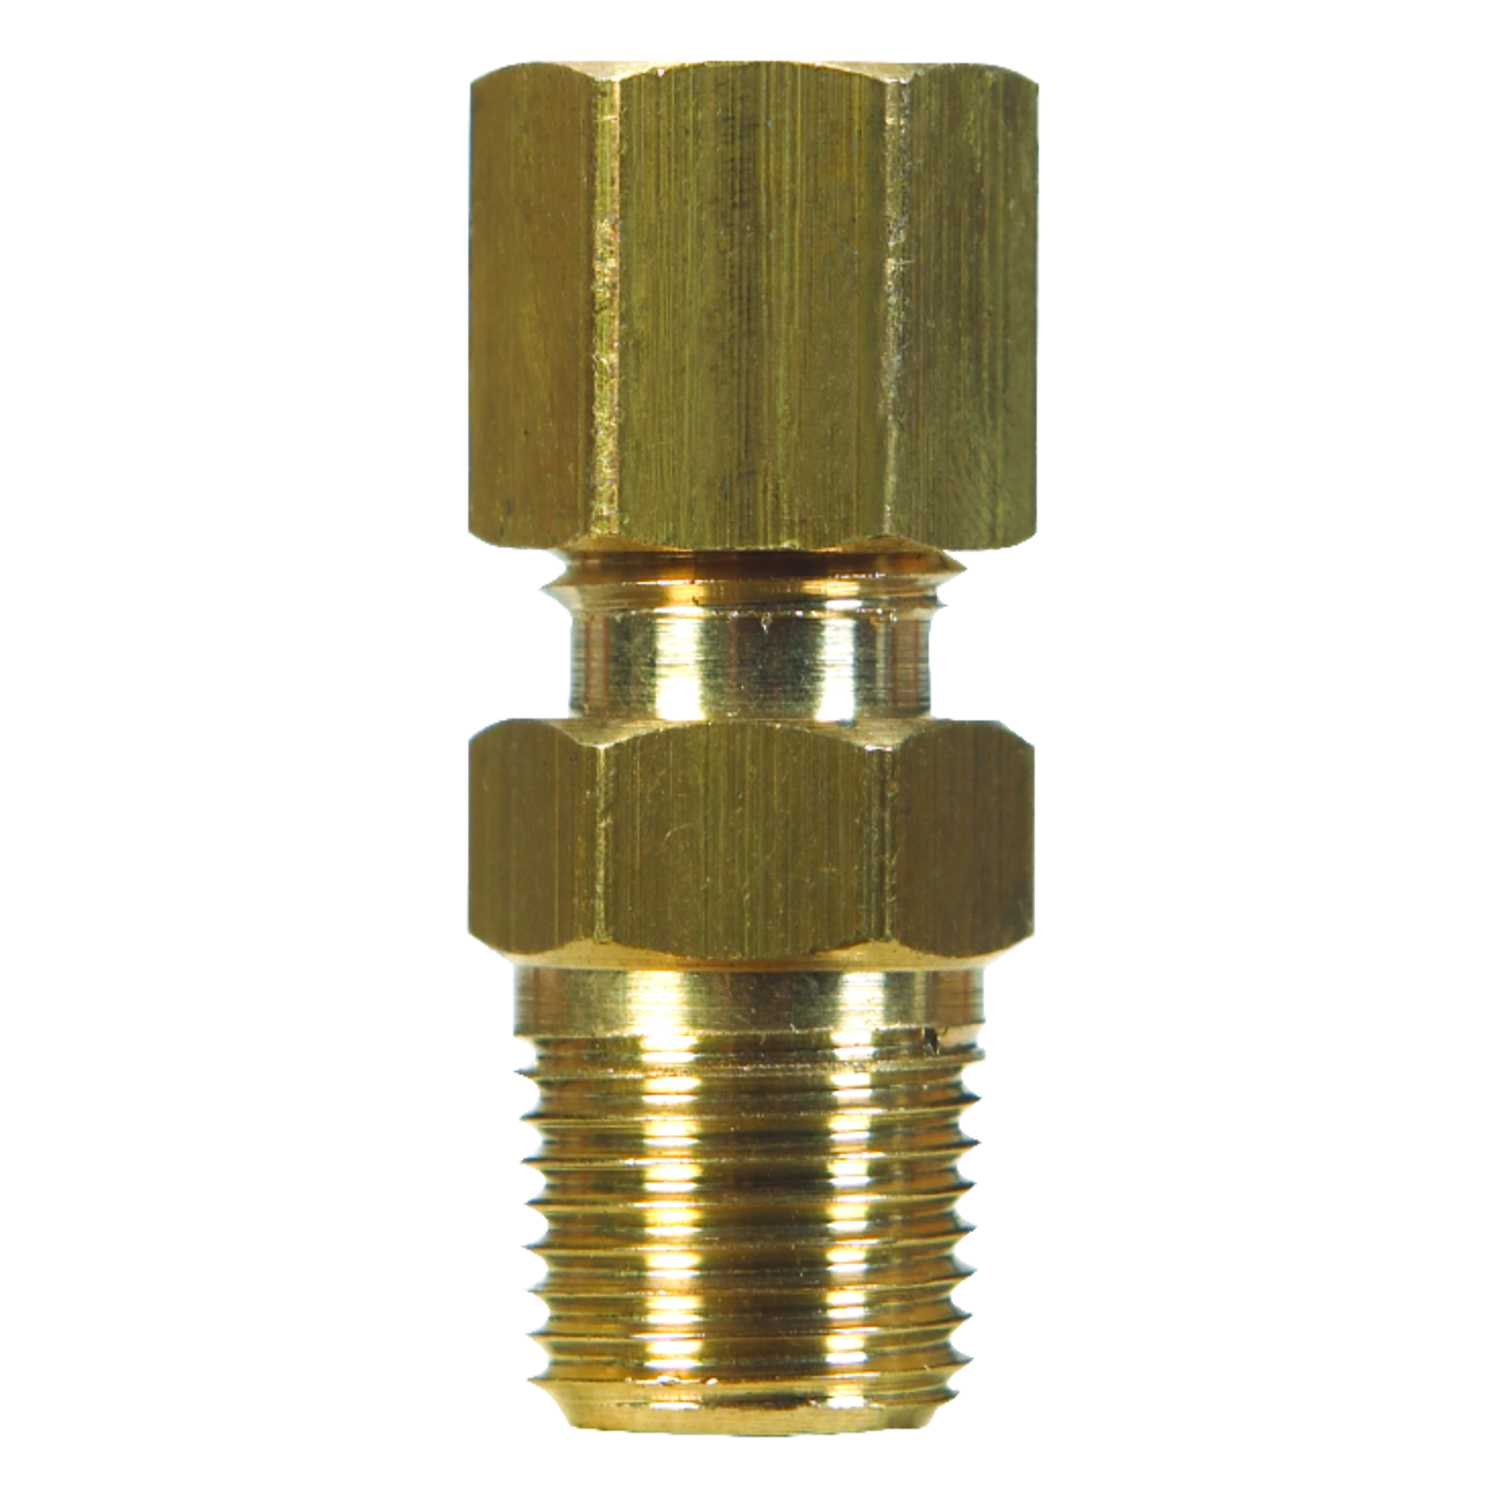 JMF  7/8 in. Dia. x 3/4 in. Dia. Brass  Compression Connector